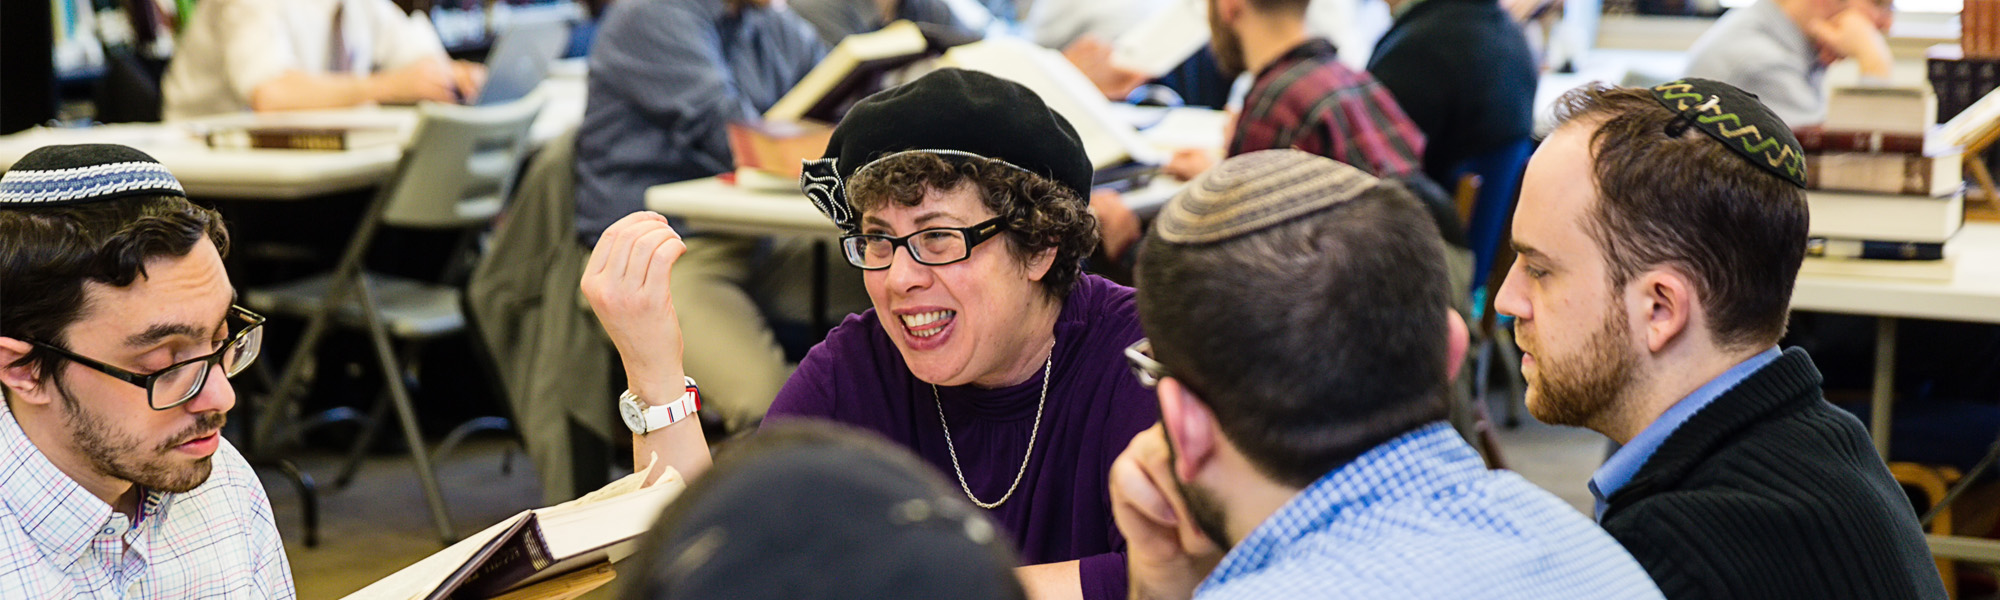 Academics - Yeshivat Chovevei Torah, Setting the standard in rabbinic education